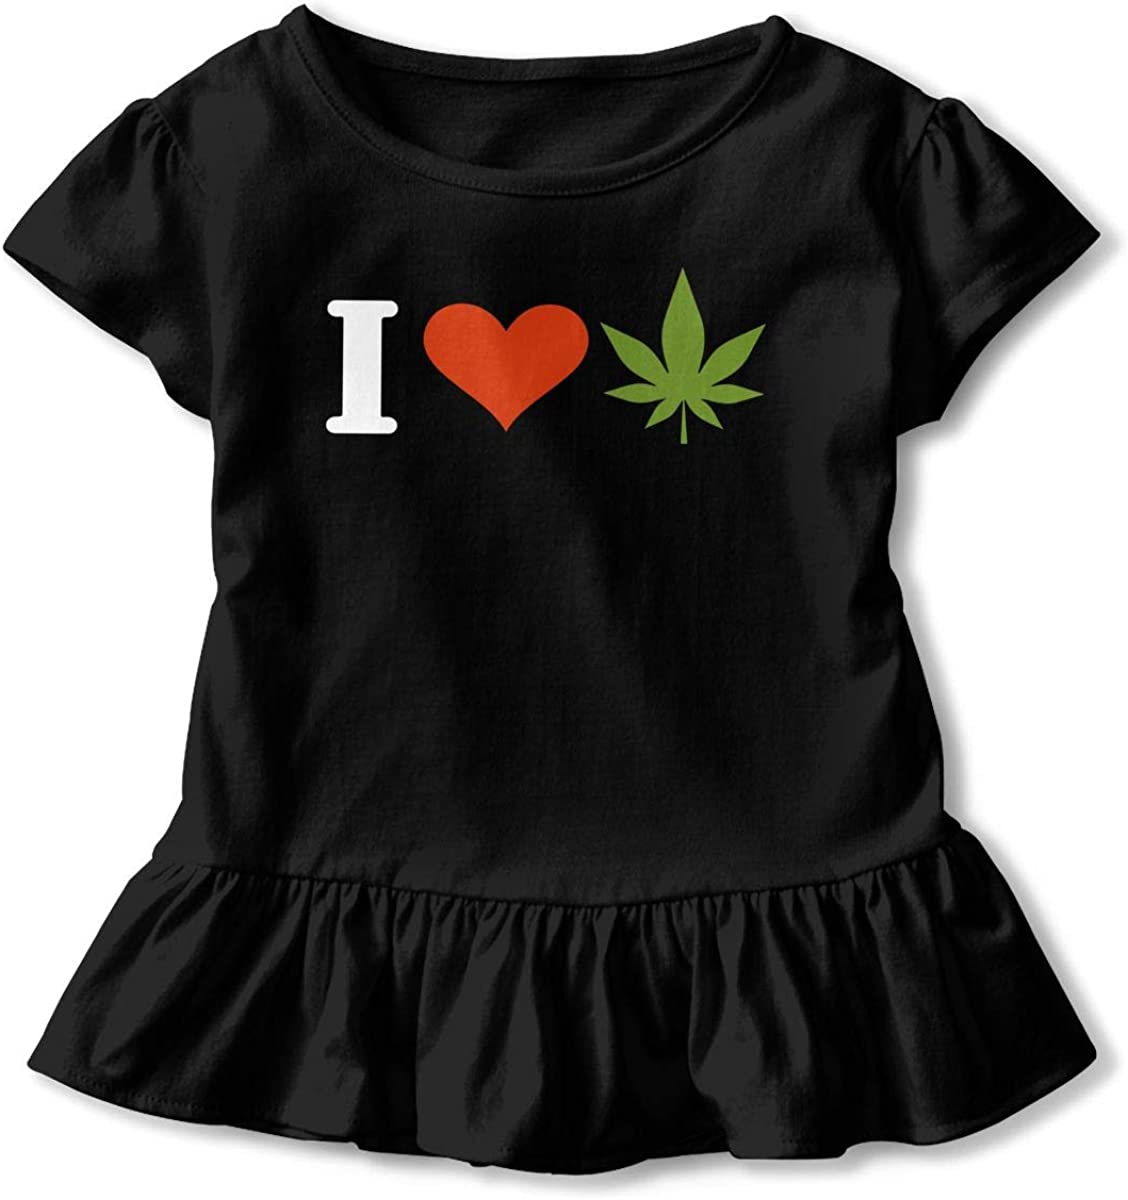 Cute Tunic Tops with Falbala Short Sleeve I Love Weed T-Shirts for Kids 2-6T